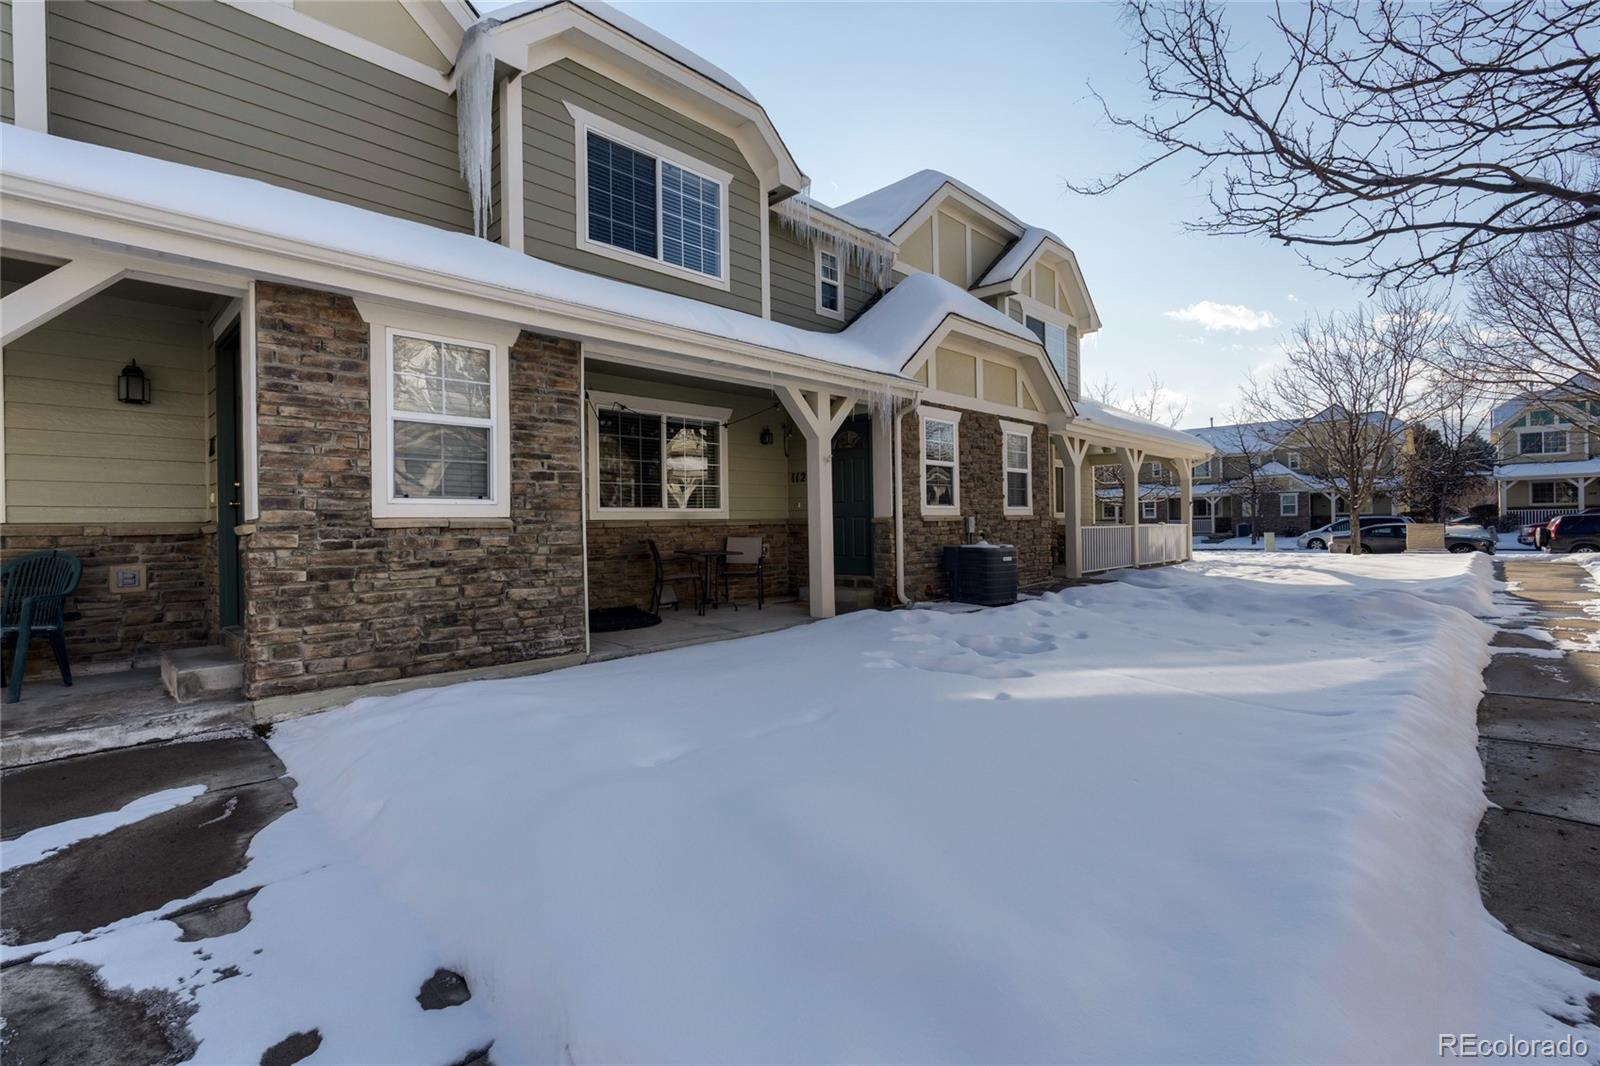 MLS# 4315489 - 32 - 1020 Andrews Peak Drive #D112, Fort Collins, CO 80521